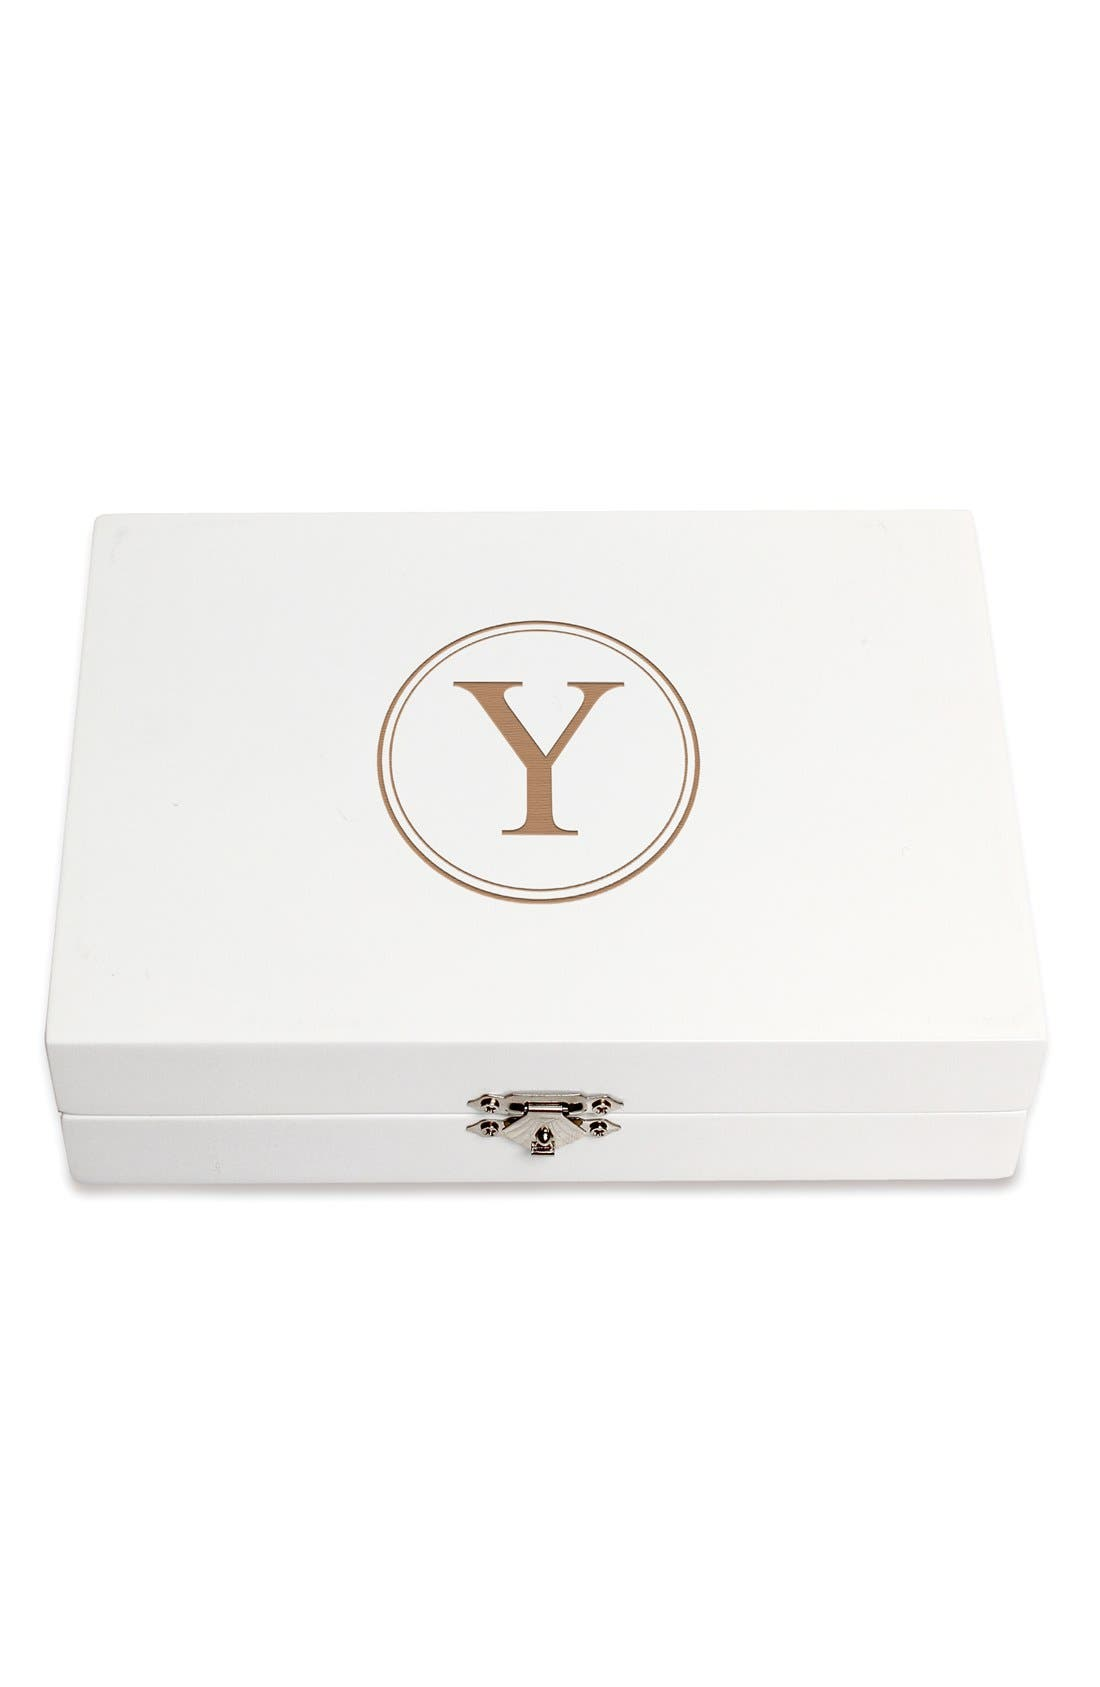 Monogram Wooden Jewelry Box,                             Main thumbnail 53, color,